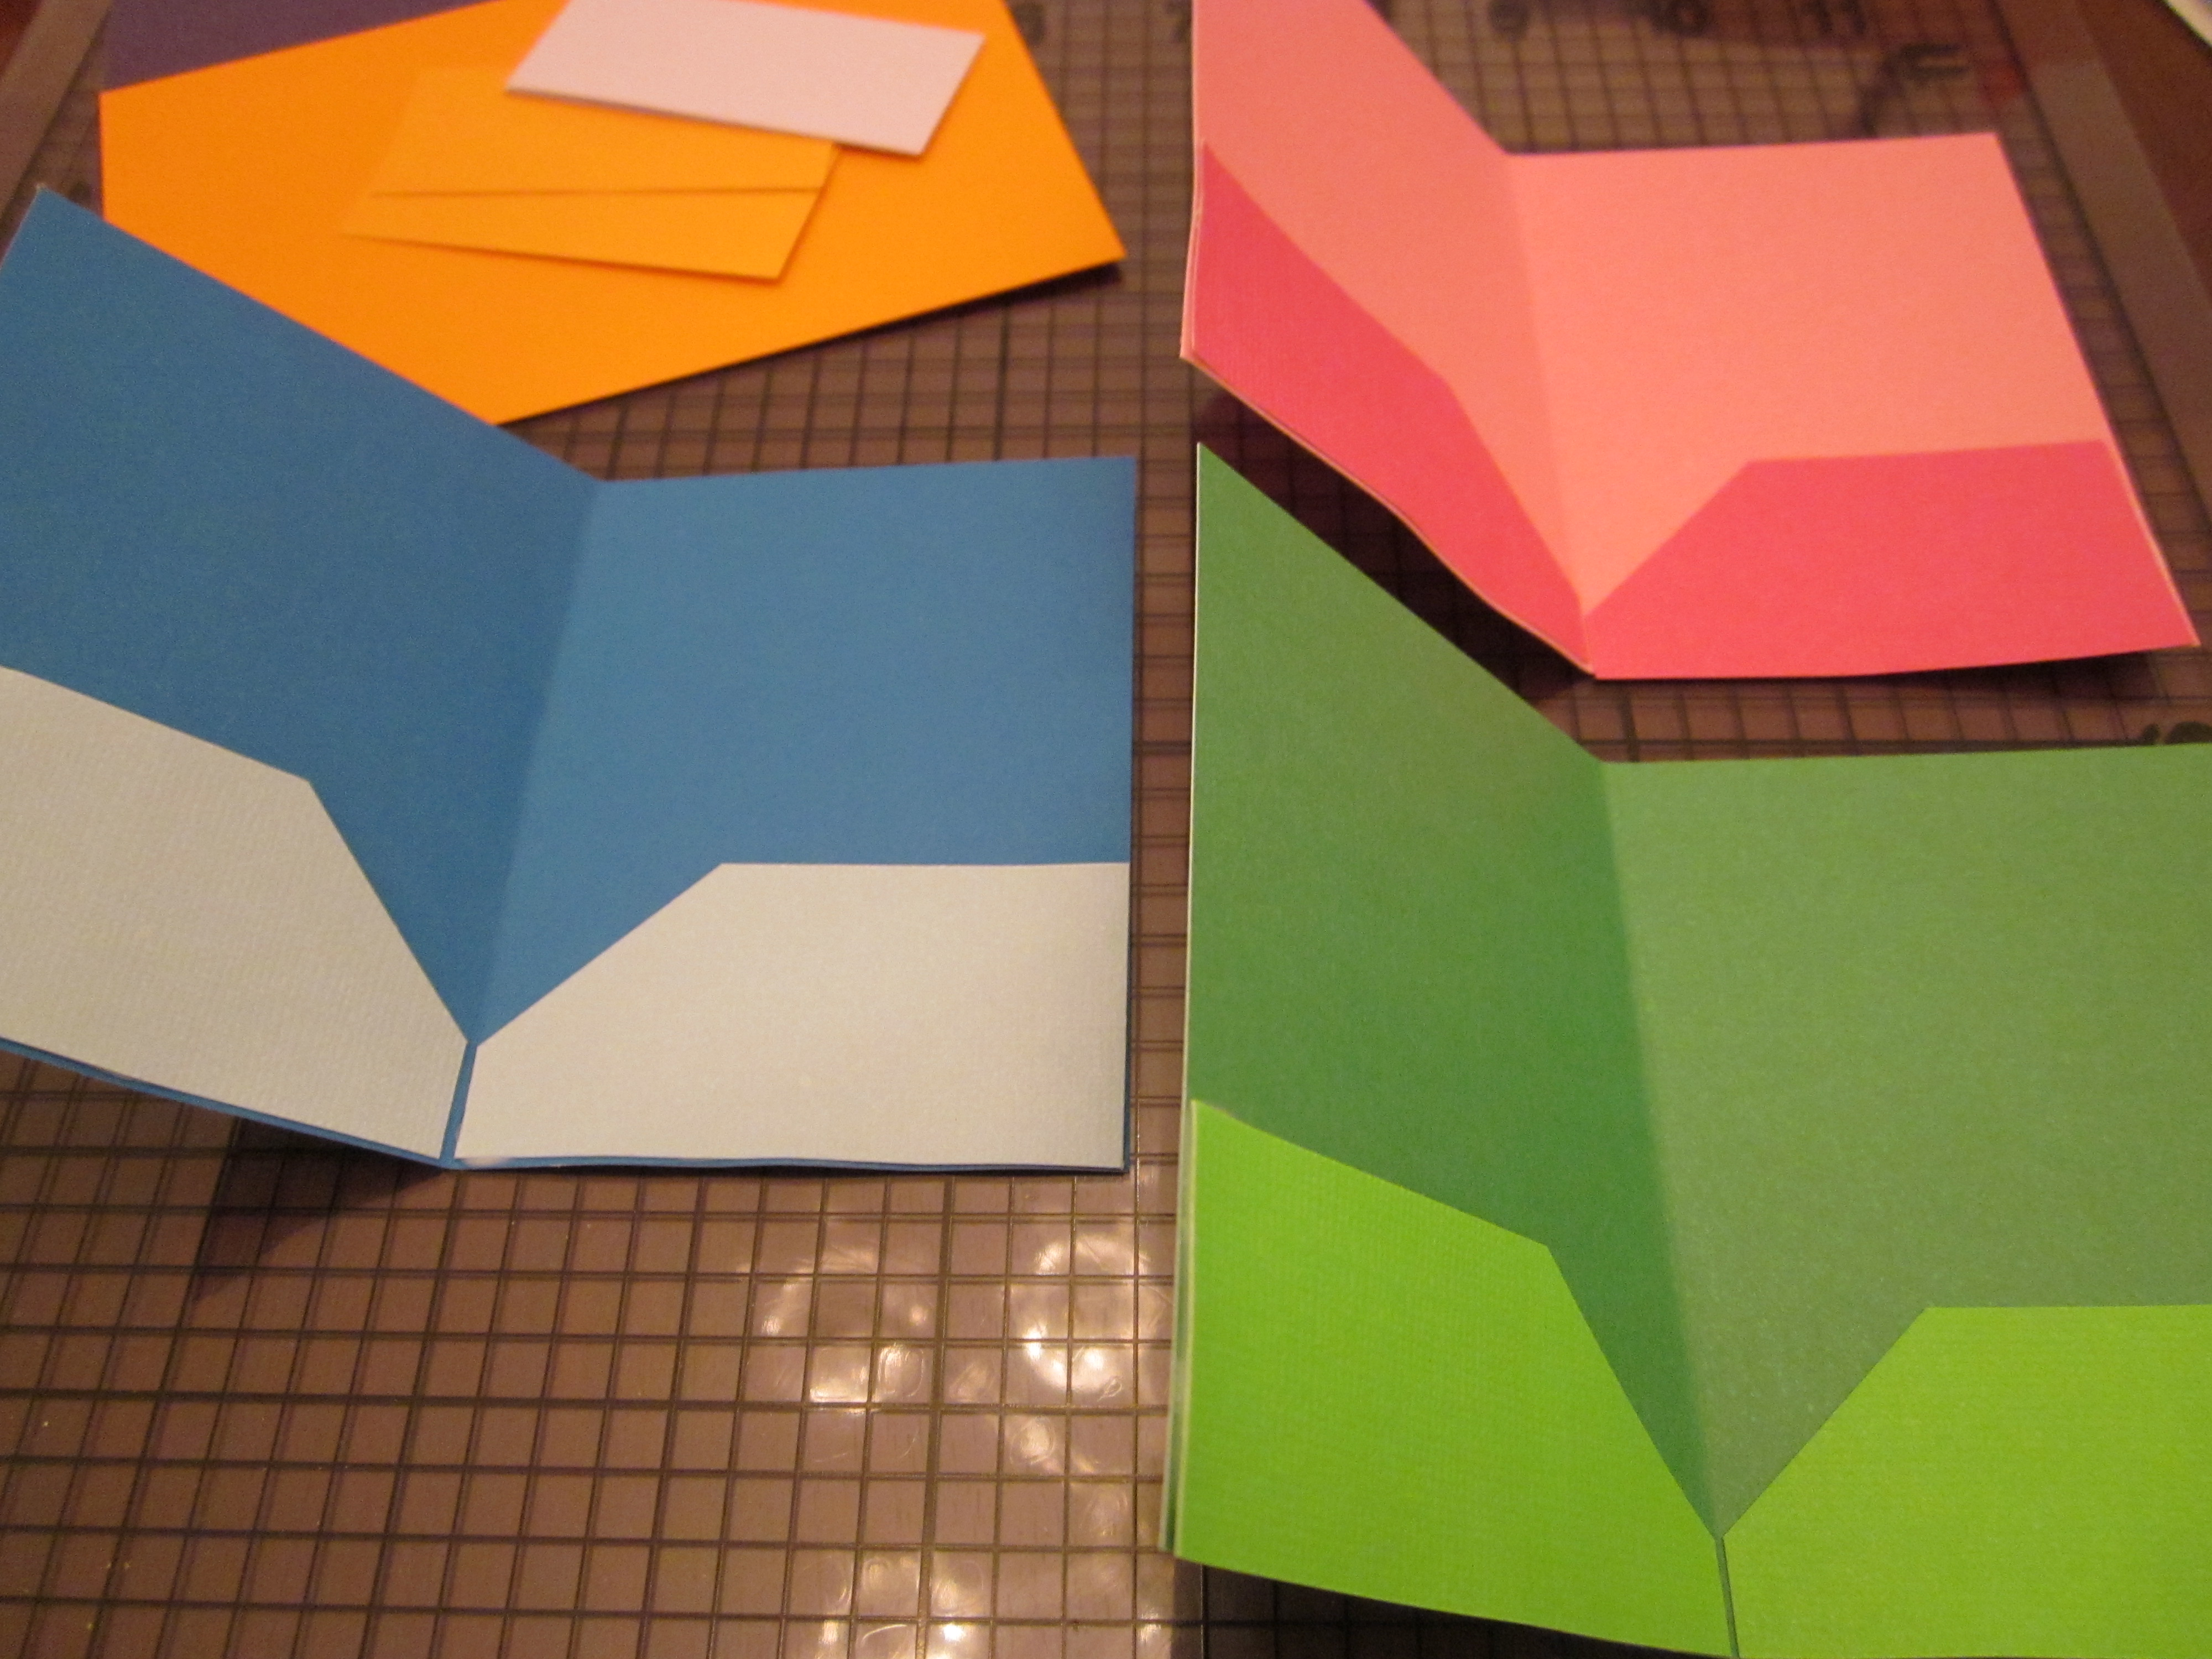 How To Make A Paper File Folder At Home